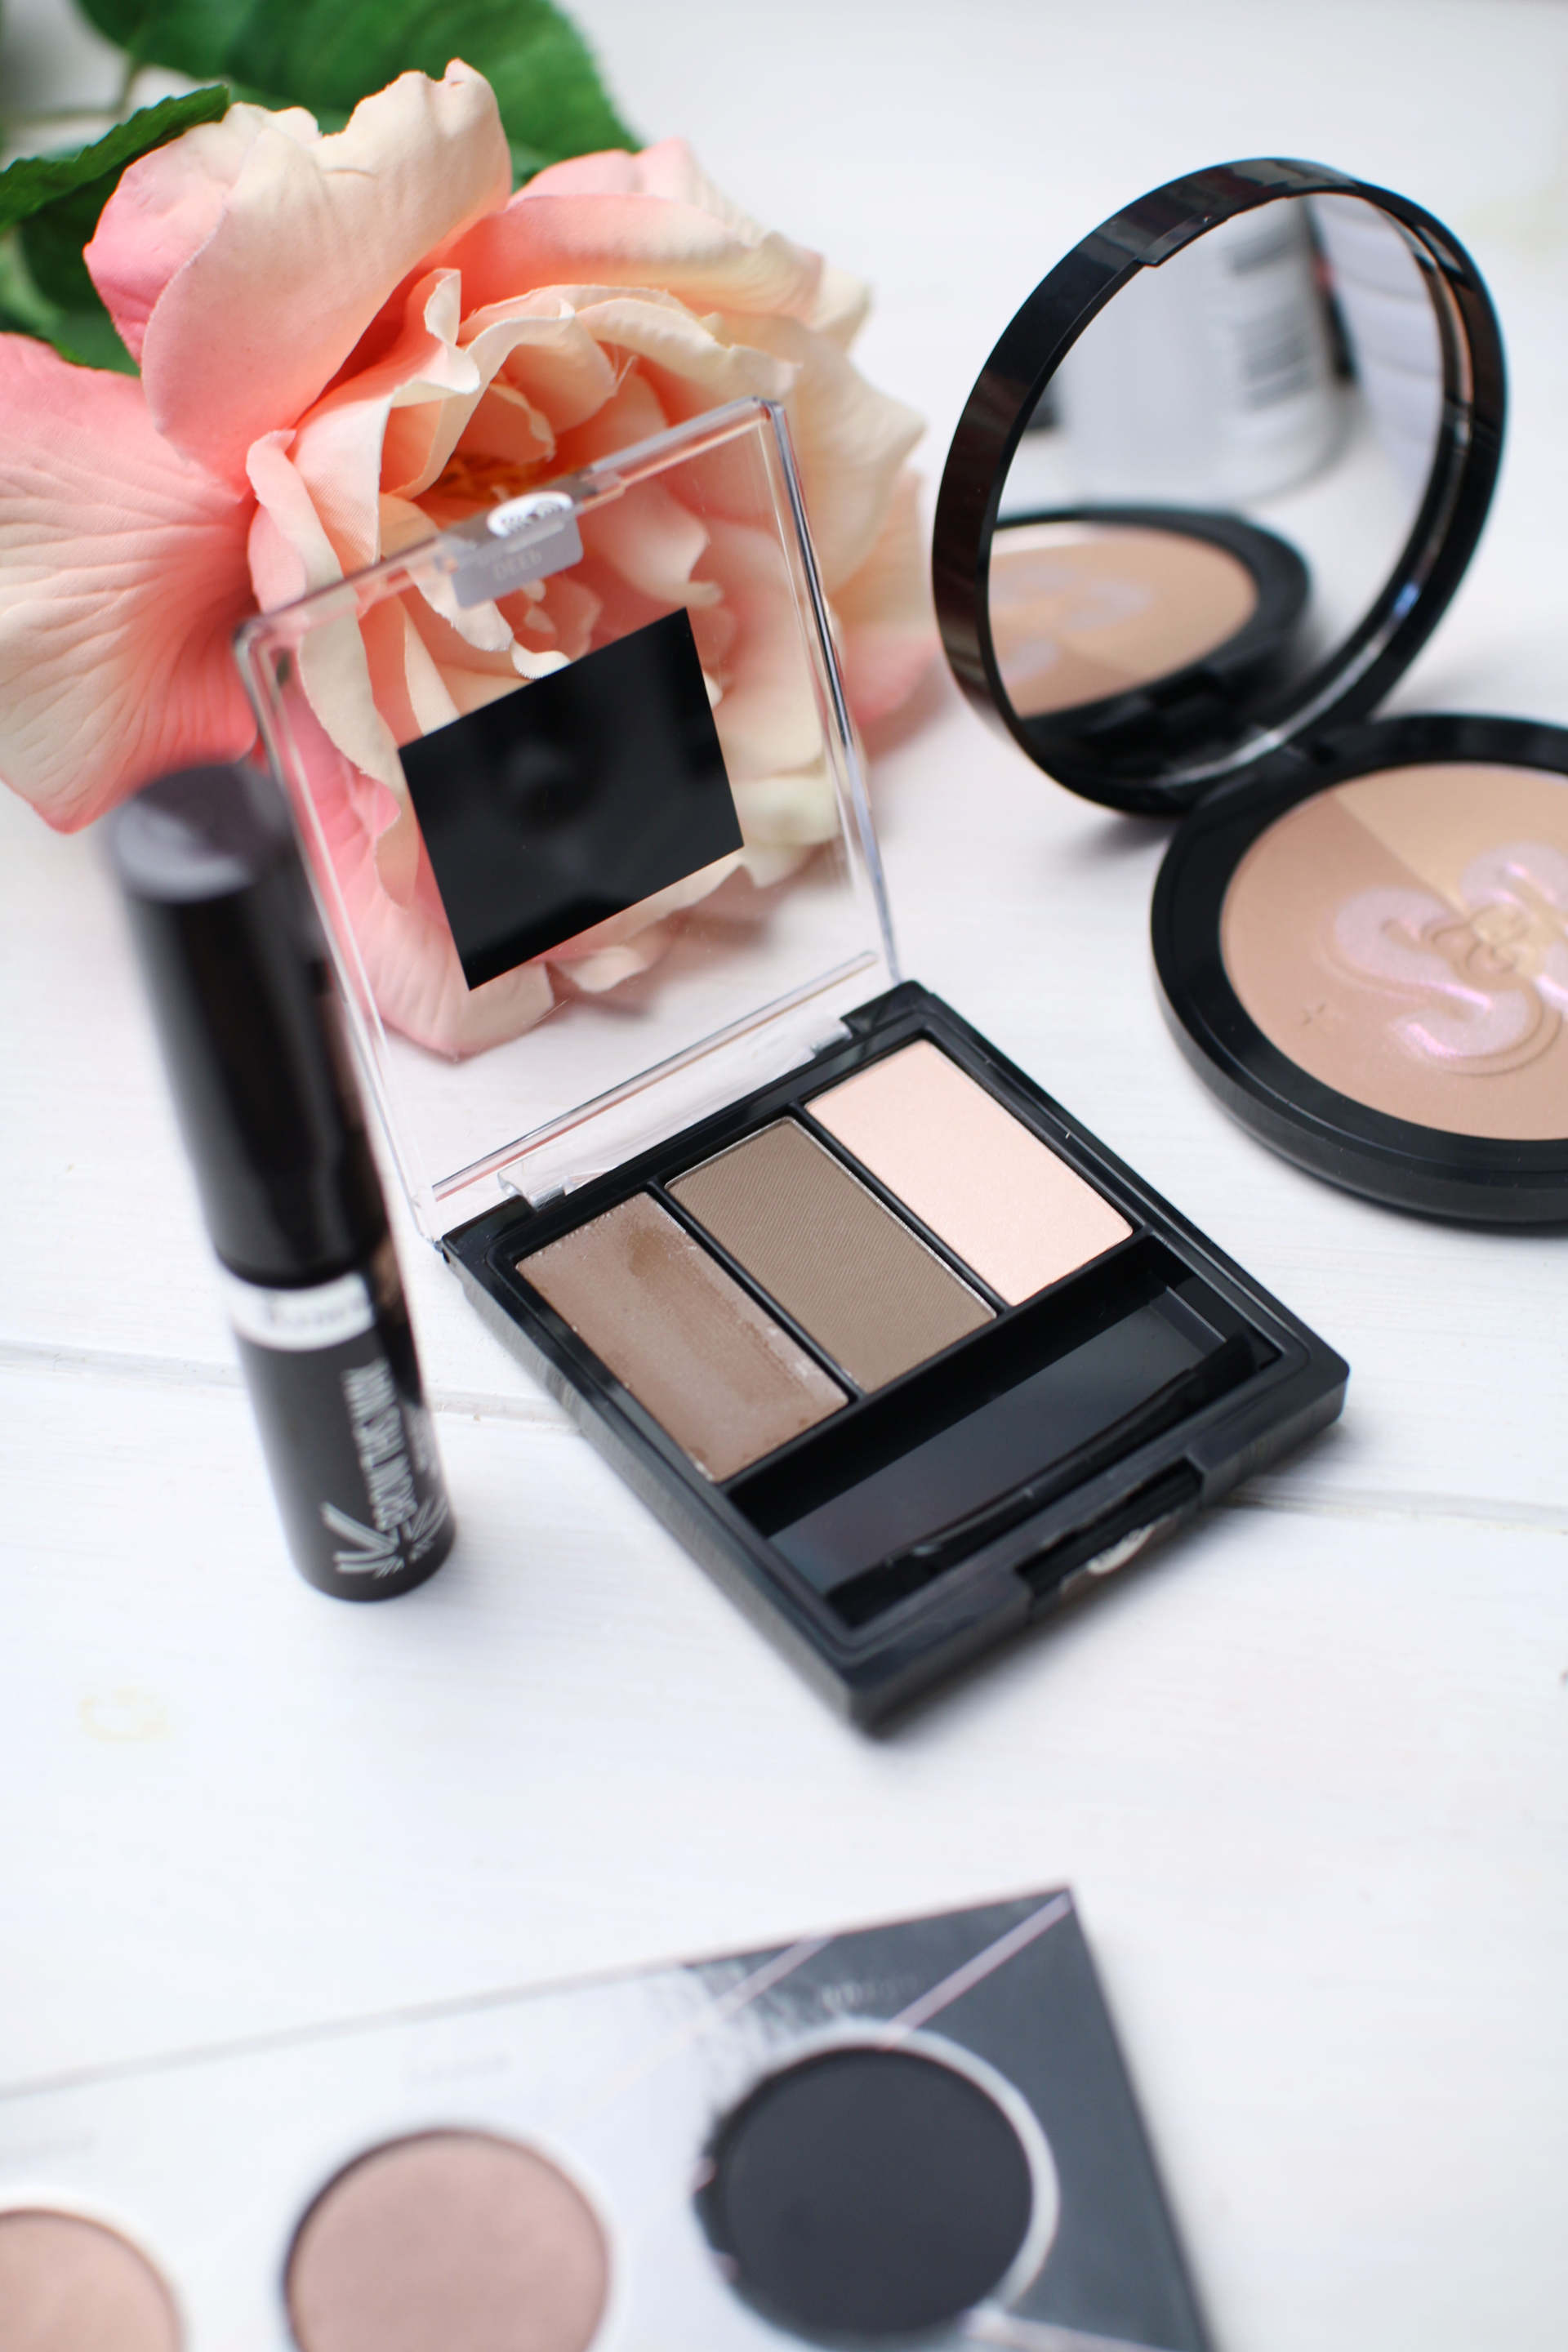 drugstore everyday makeup loreal, zoeva, soap and glory